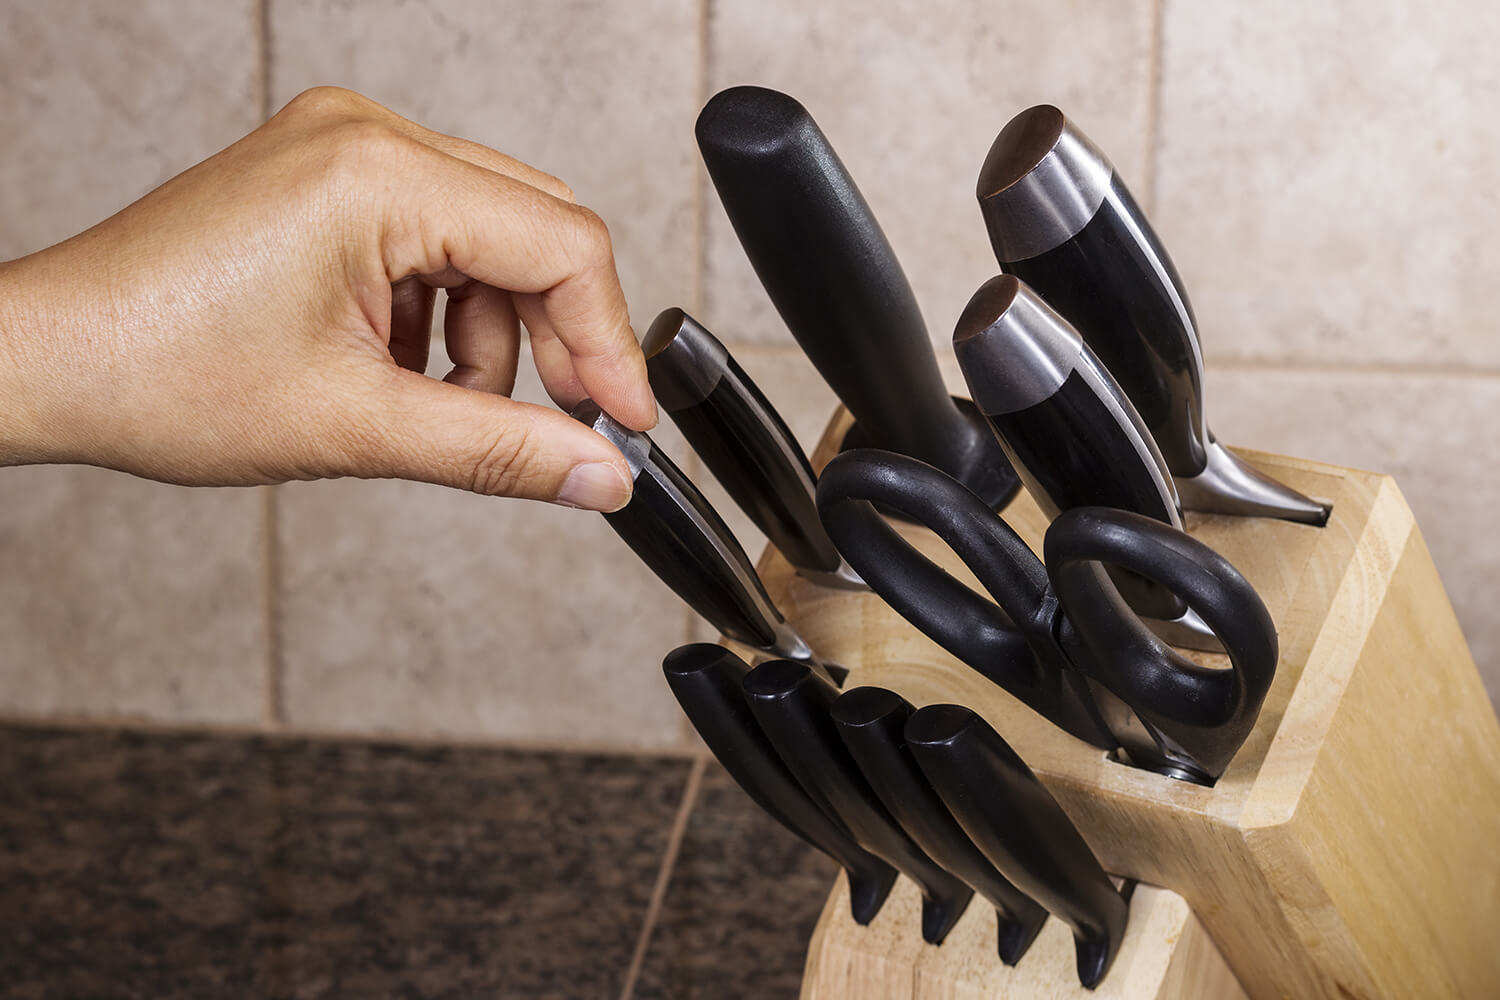 Wooden Knife Block - How To CLean With 9 Simple Steps